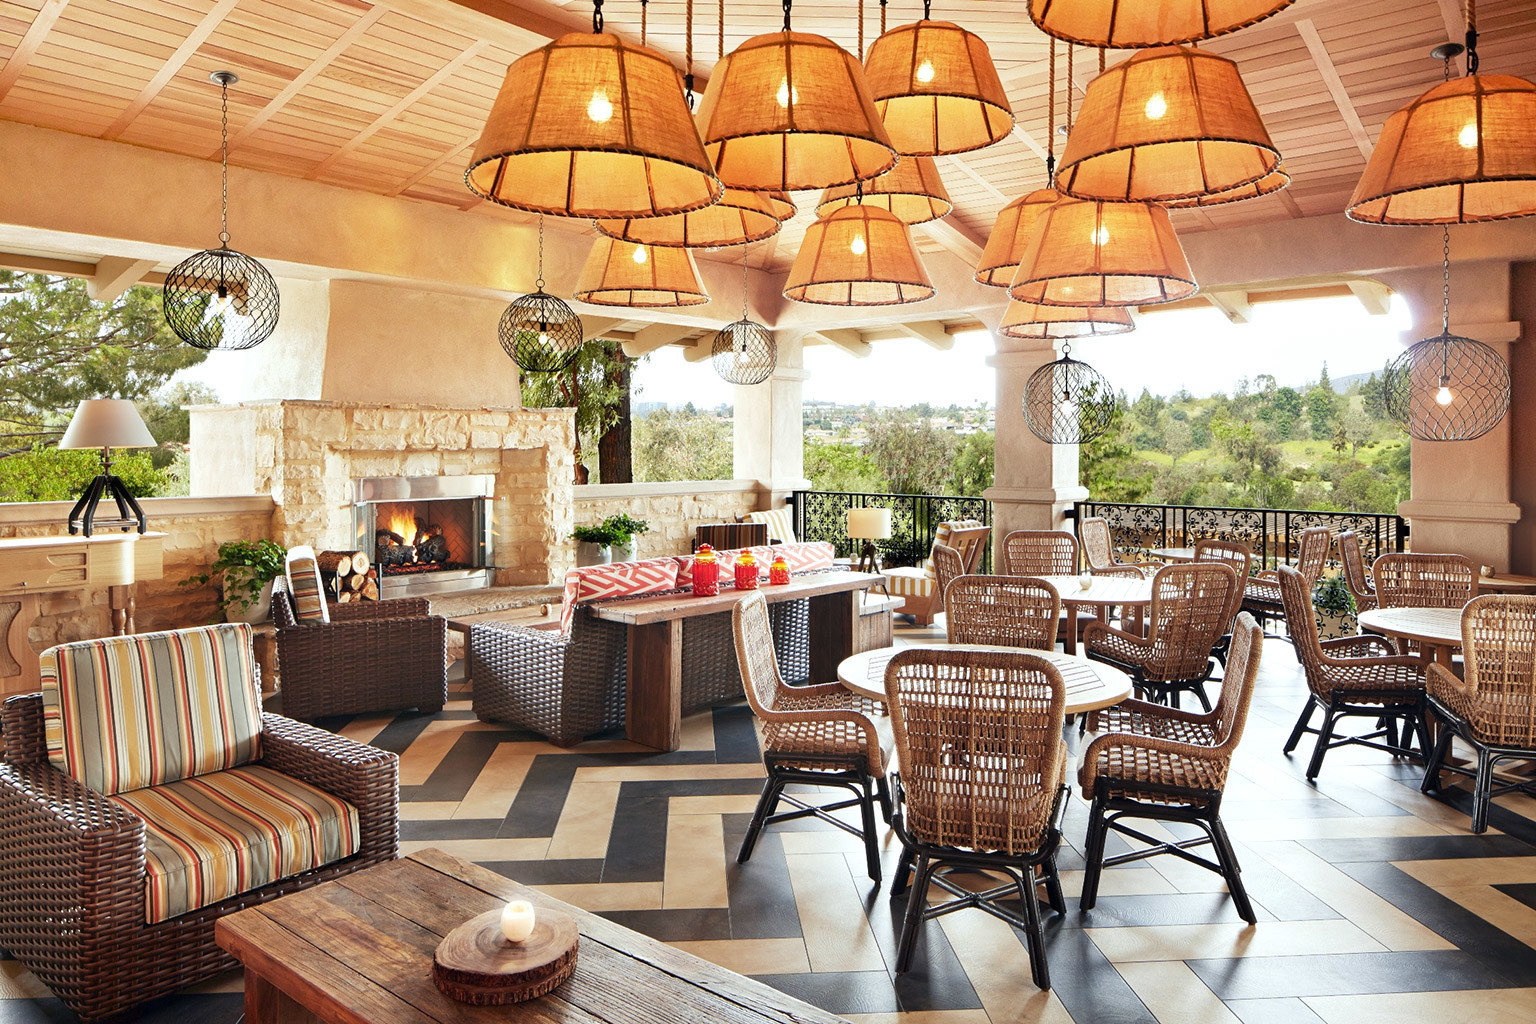 Dining Drink Eat Fireplace Inn Lounge Patio Resort chair property restaurant living room home Lobby arranged